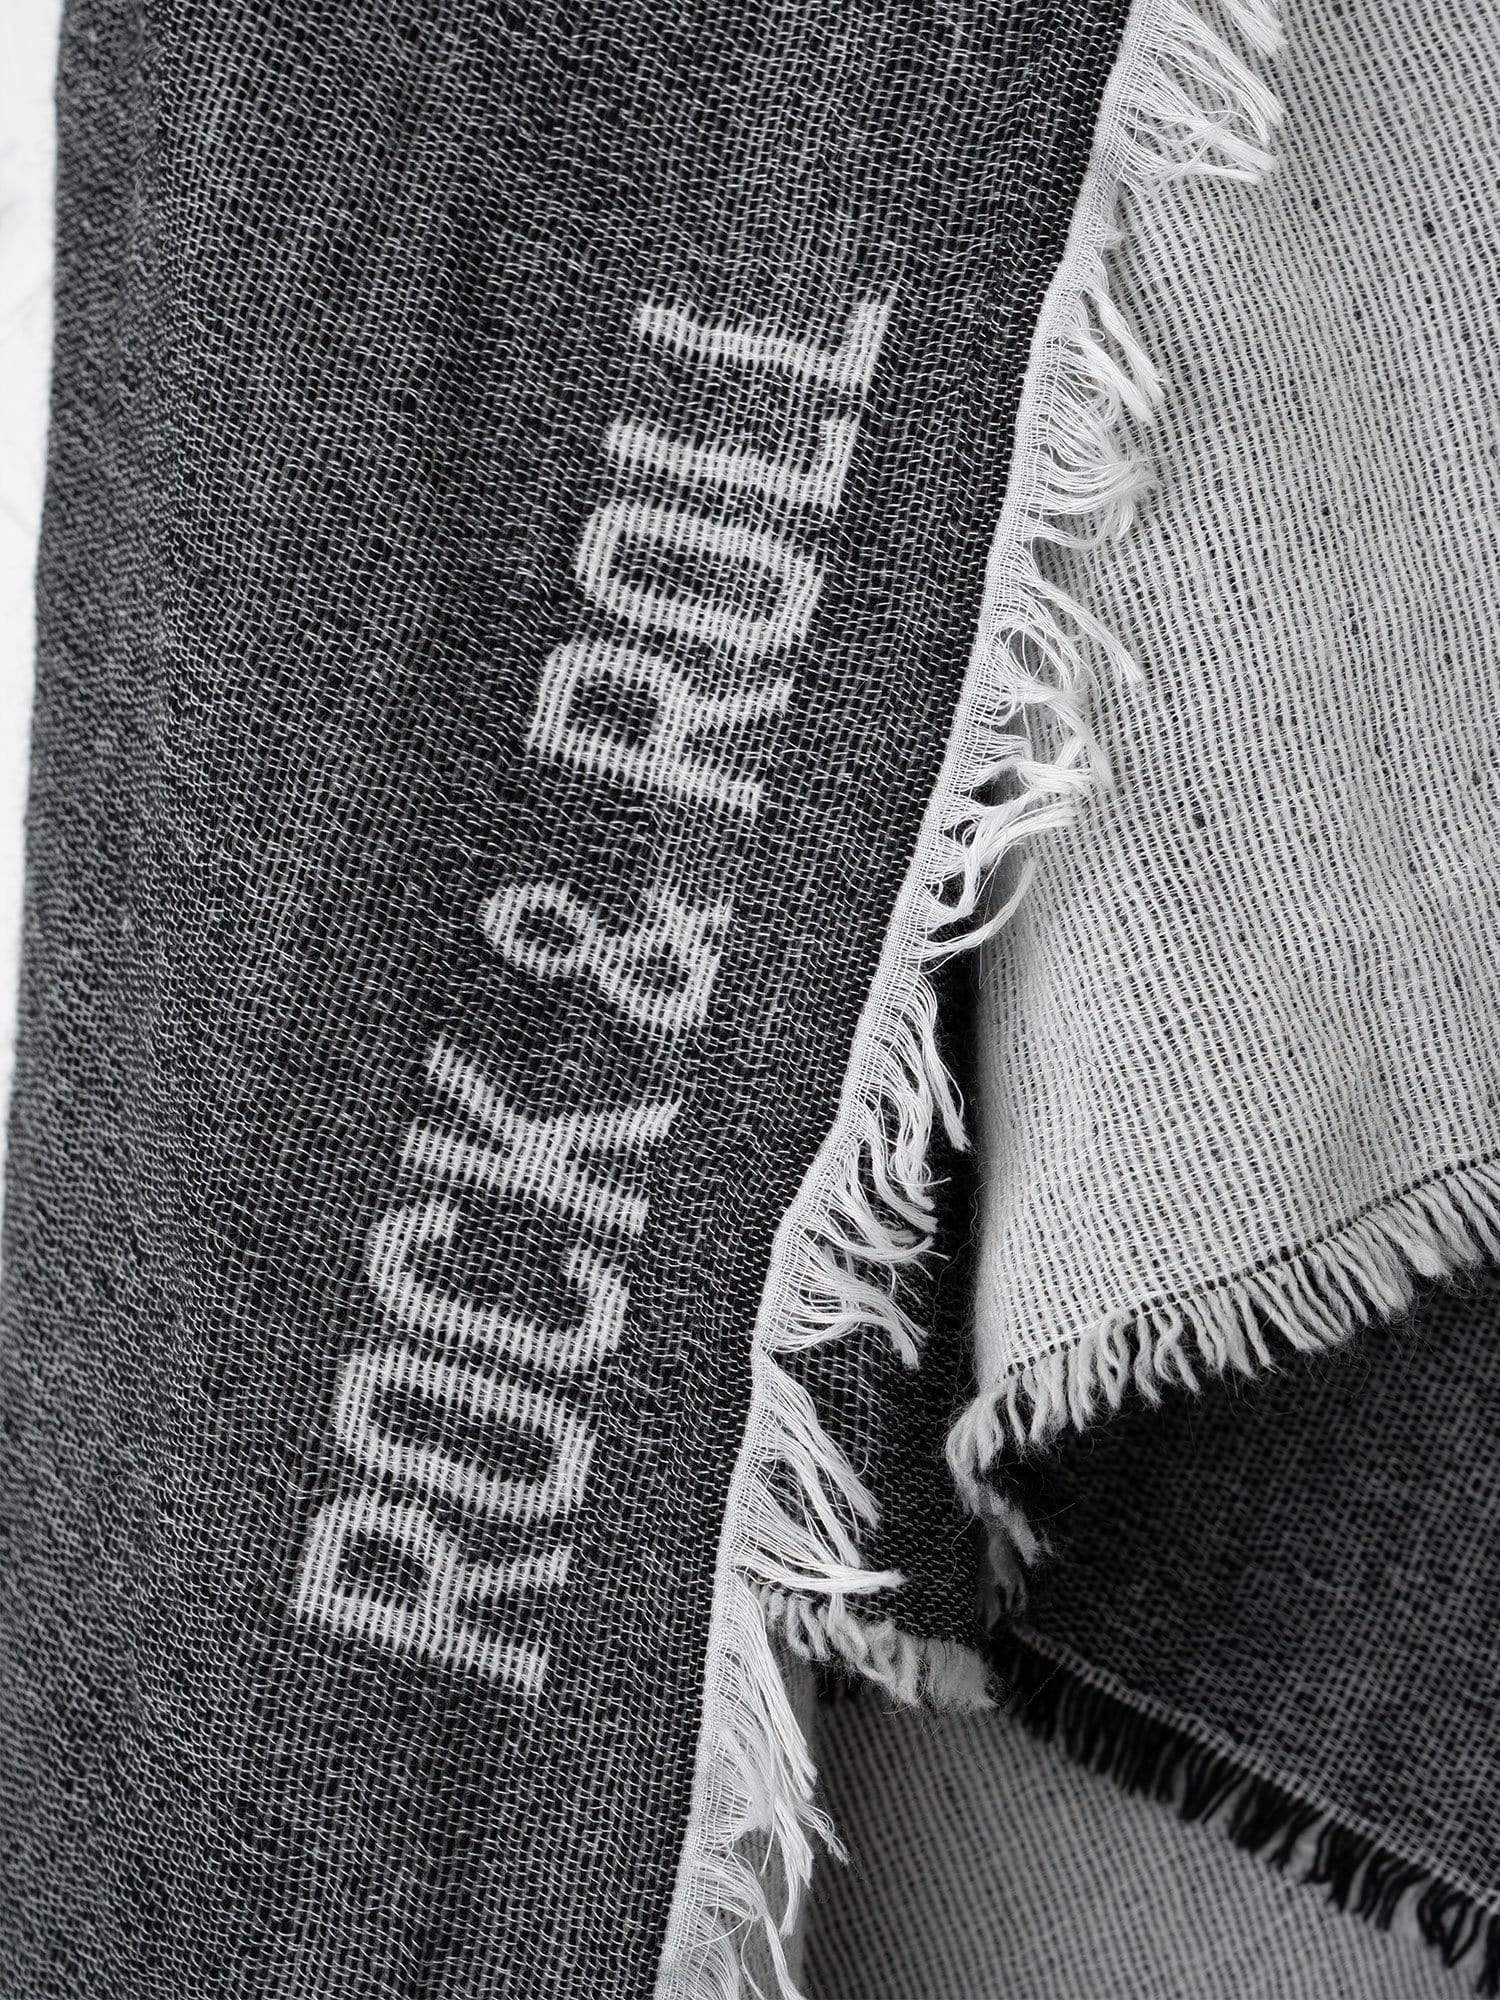 10 ways to style your rock & roll scarf